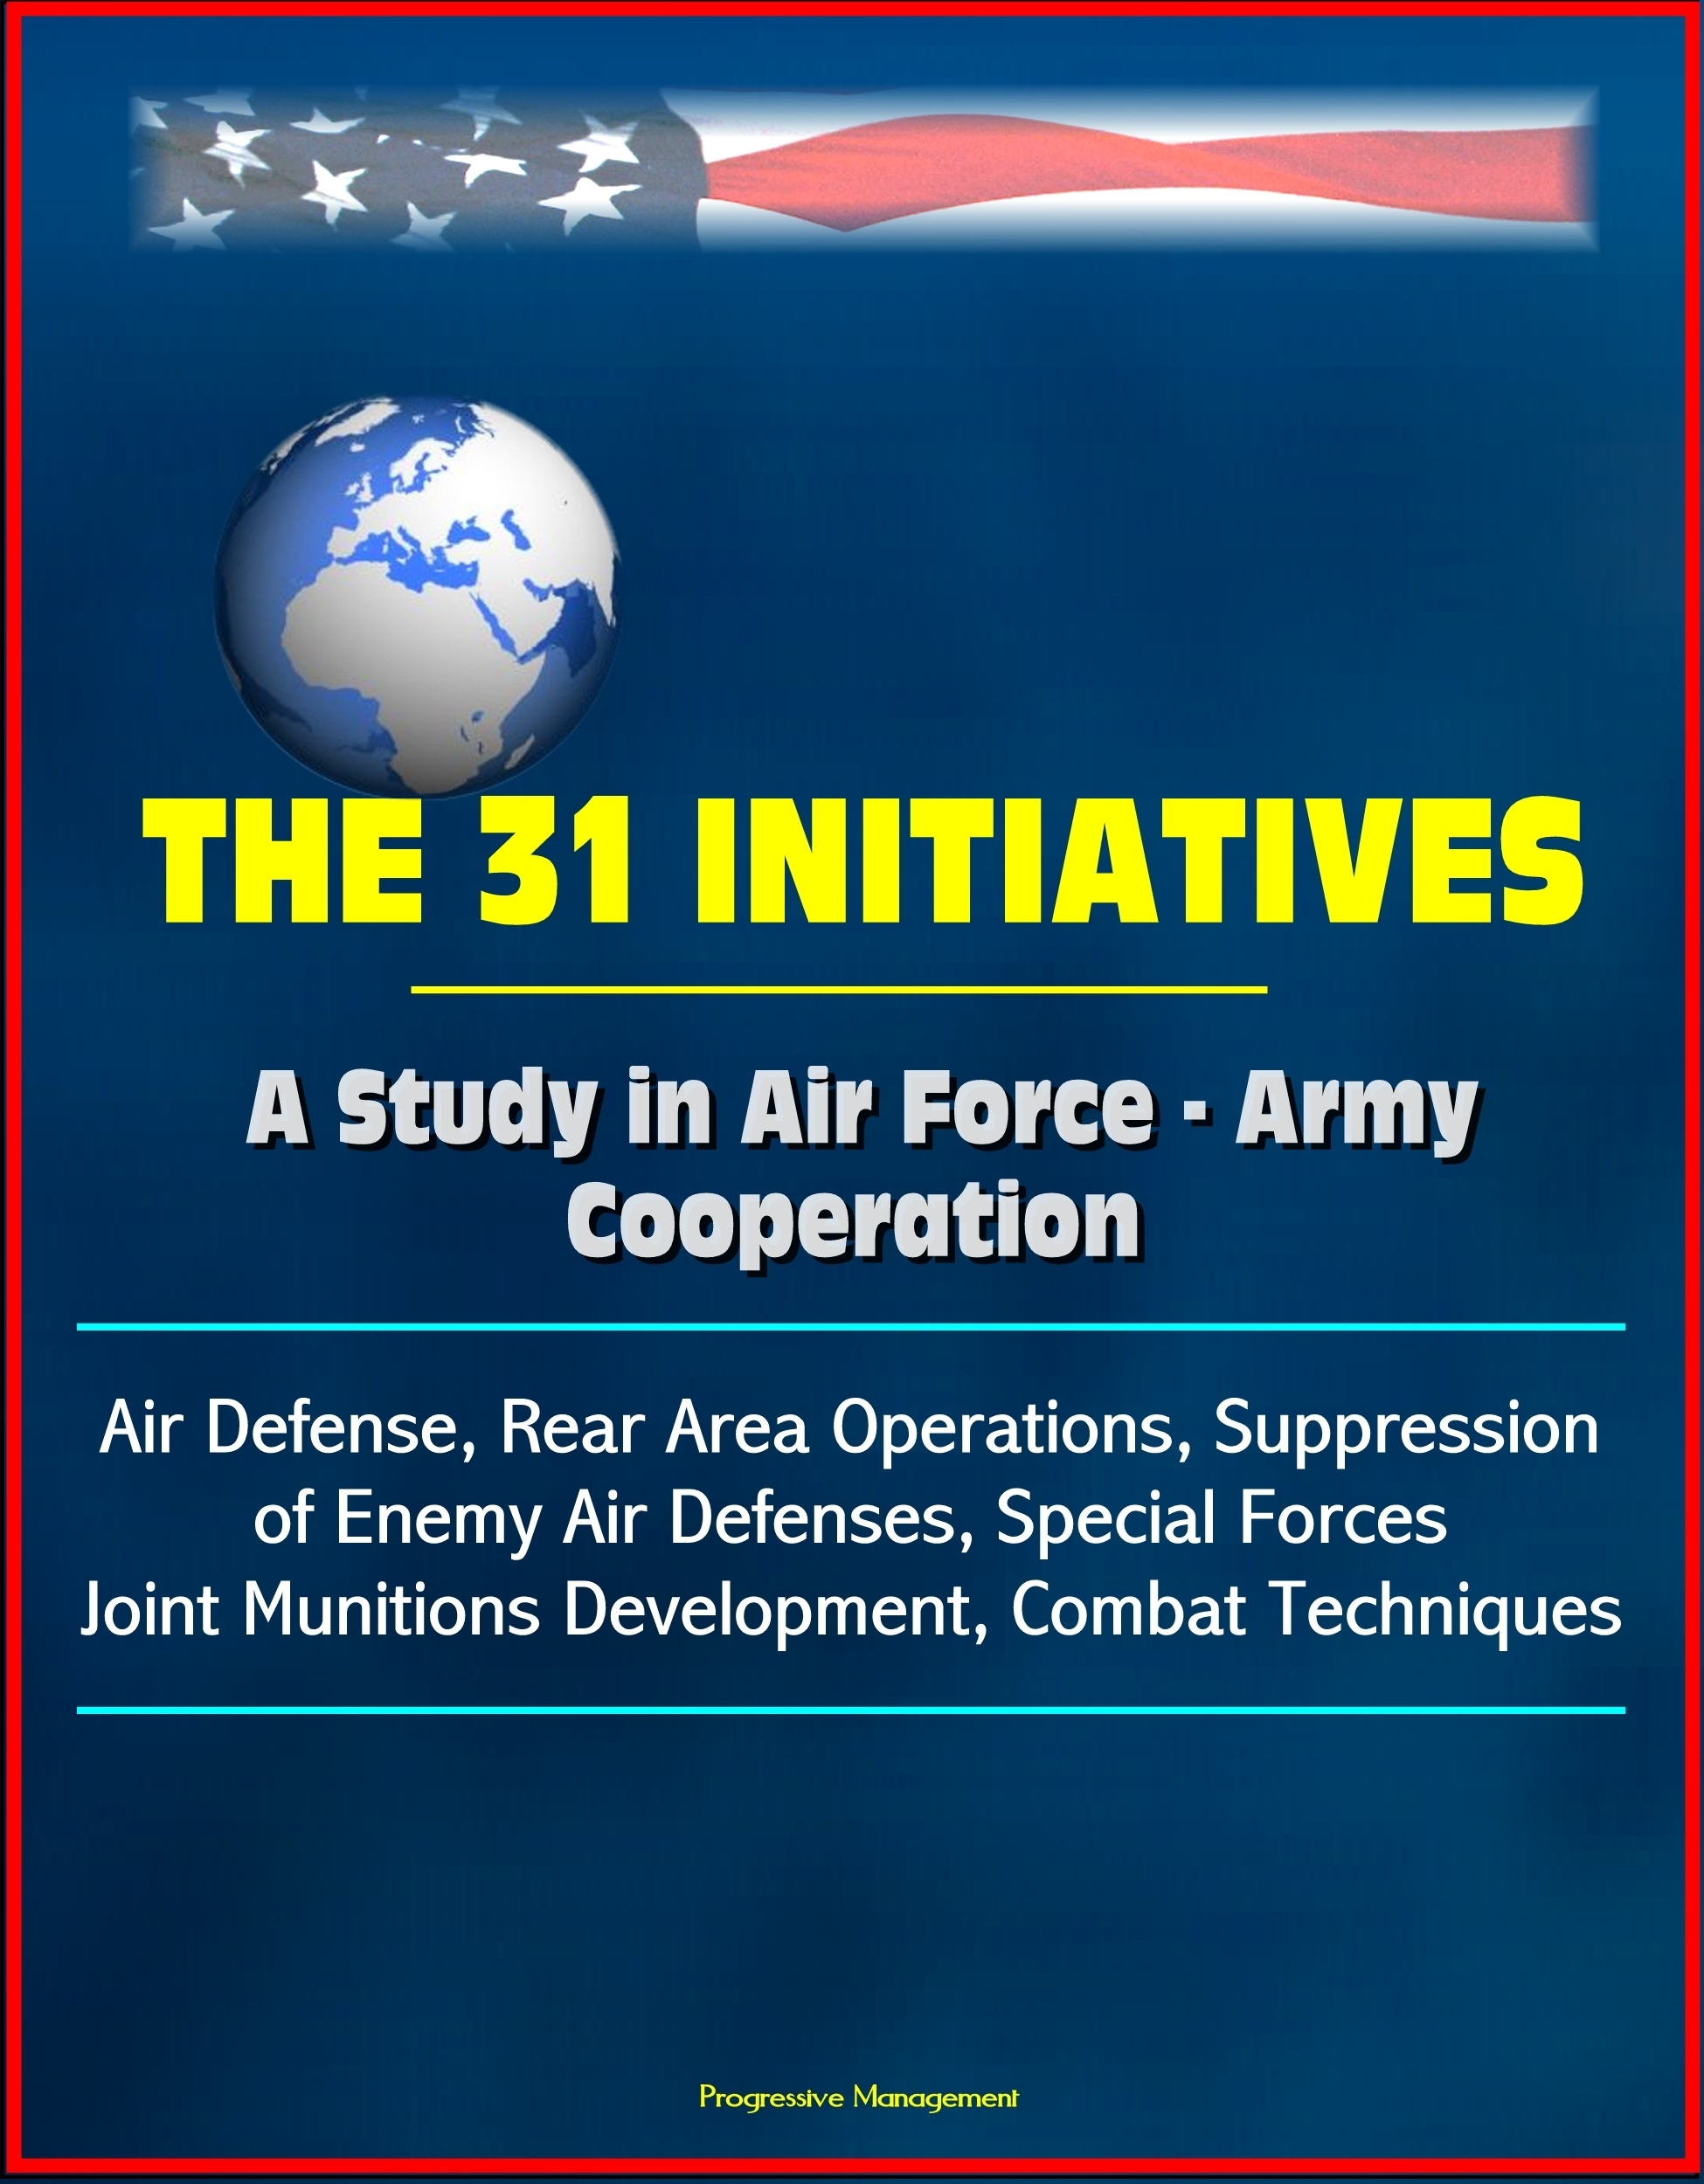 The 31 Initiatives: A Study in Air Force - Army Cooperation - Air Defense, Rear Area Operations, Suppression of Enemy Air Defenses, Special Forces, Joint Munitions Development, Combat Techniques Progressive Management